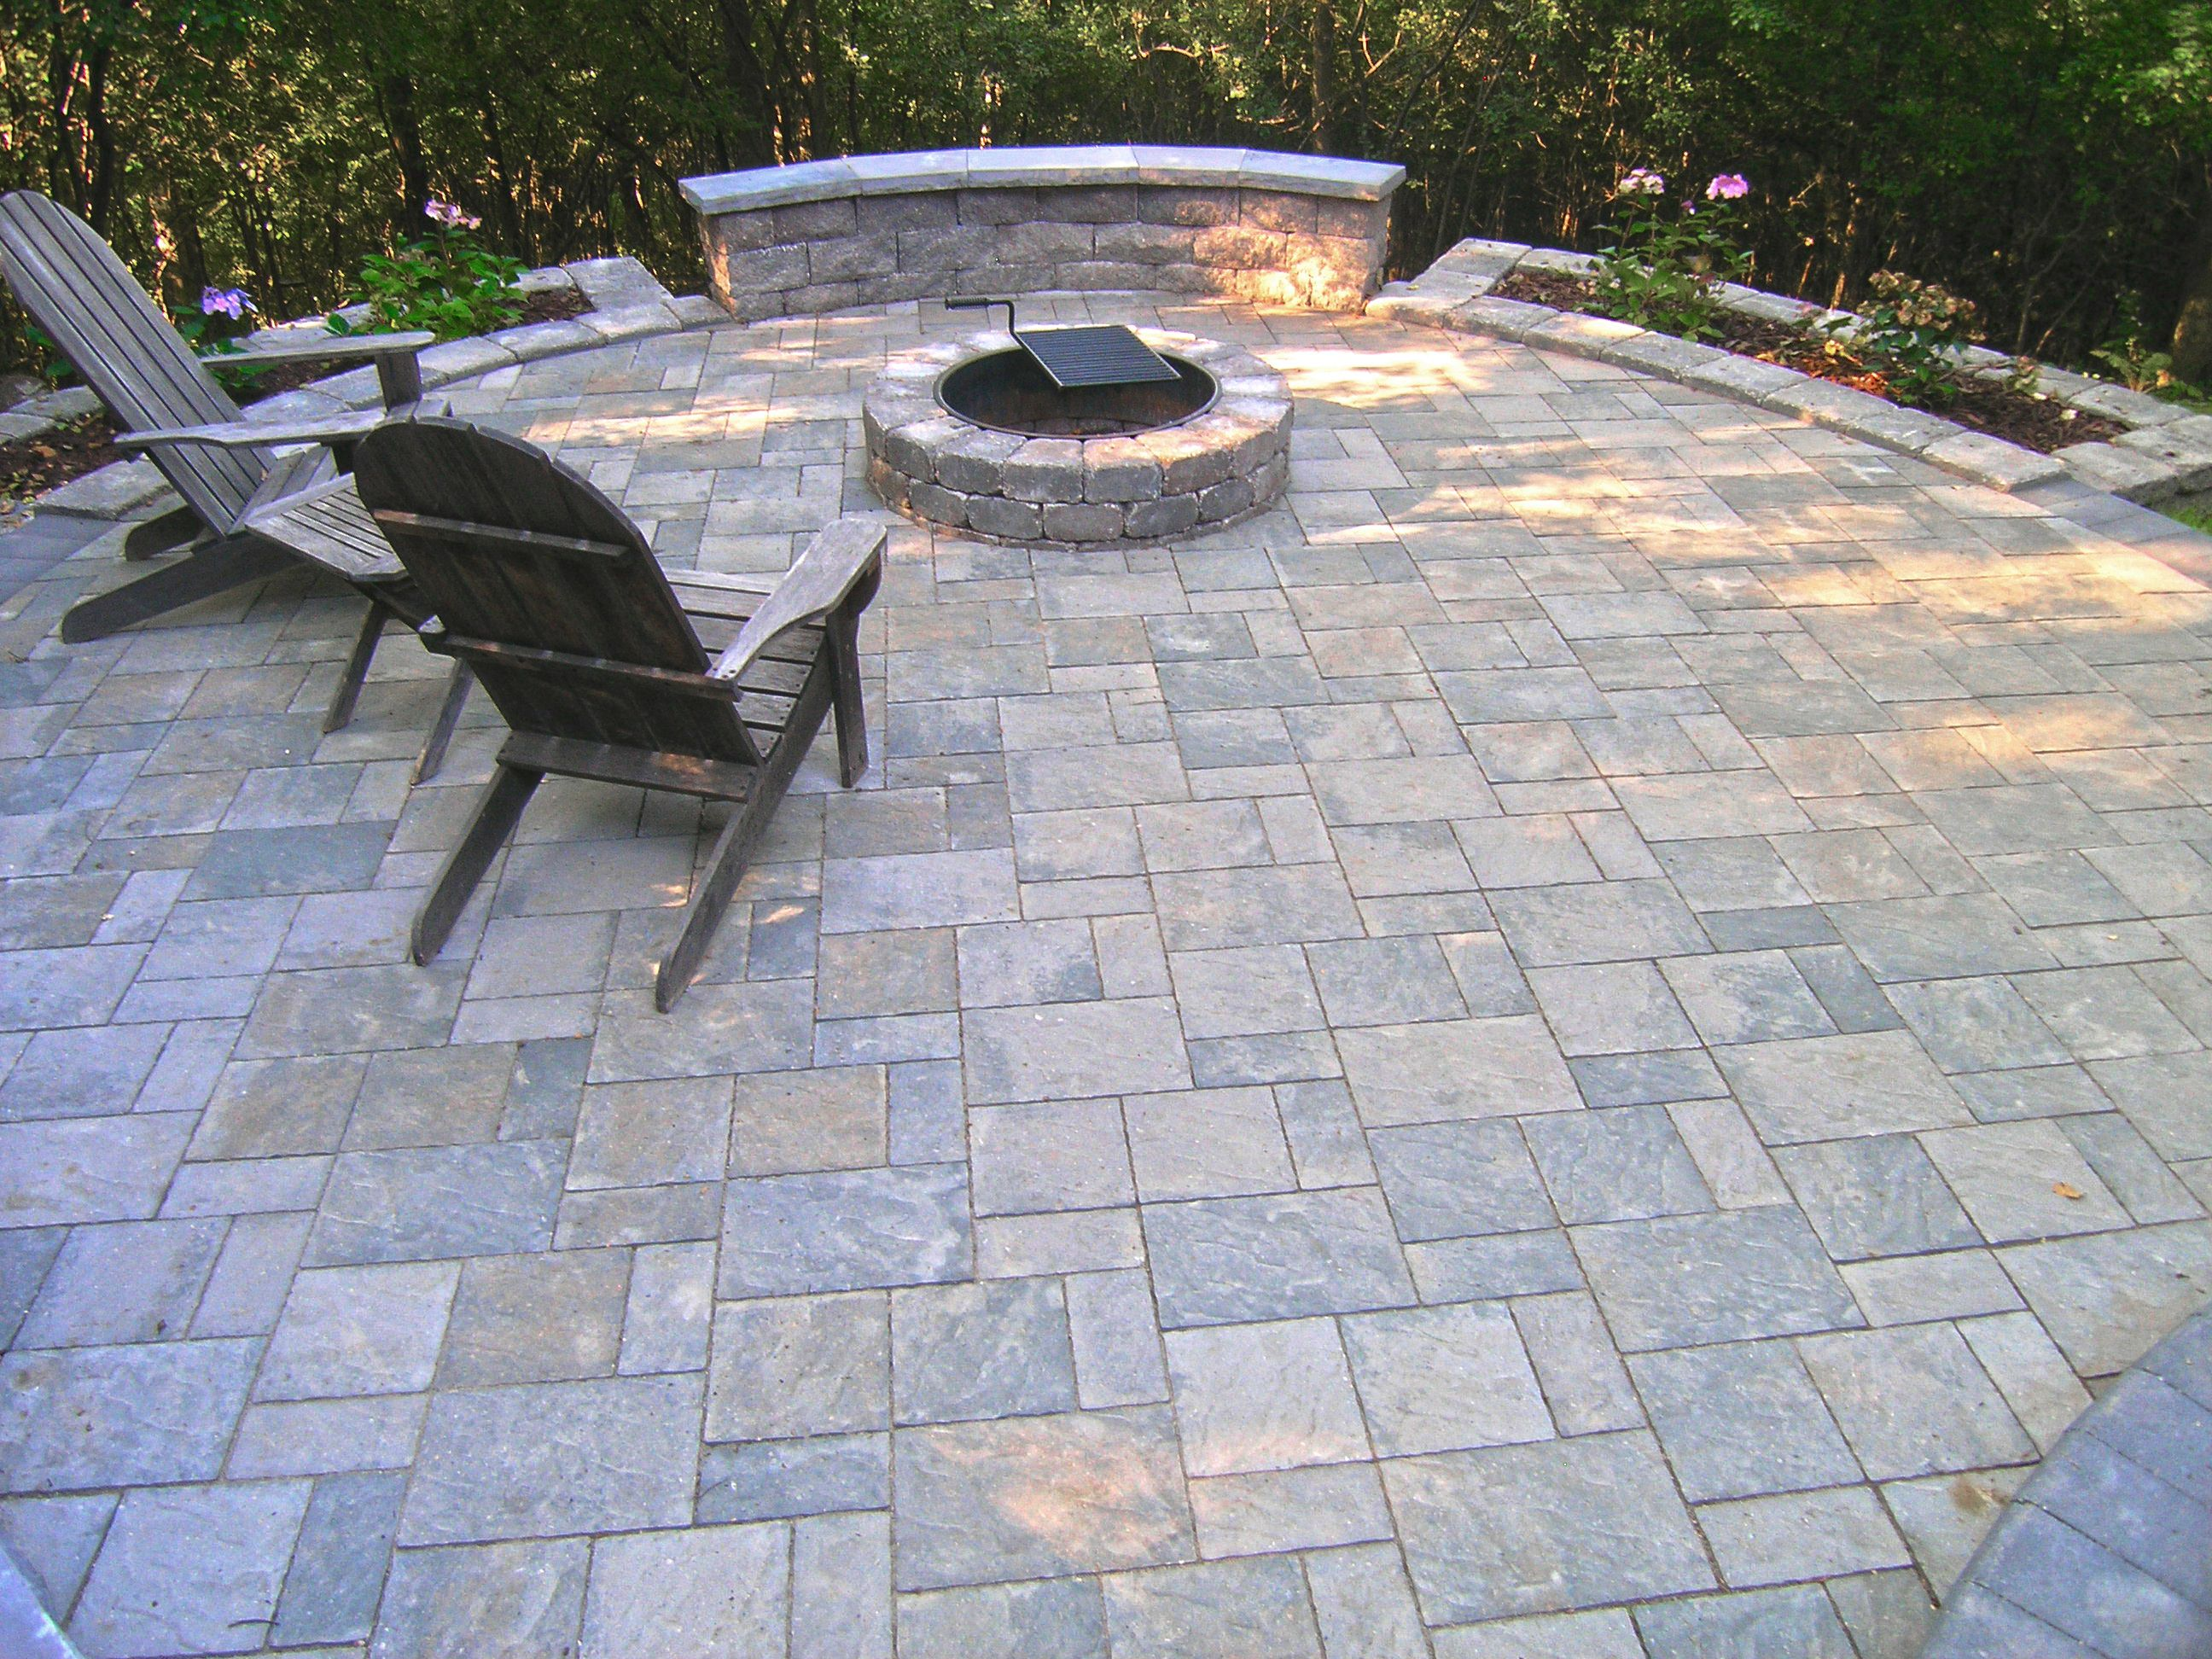 25 Great Stone Patio Ideas for Your Home | Stone patios, Stone patio ...